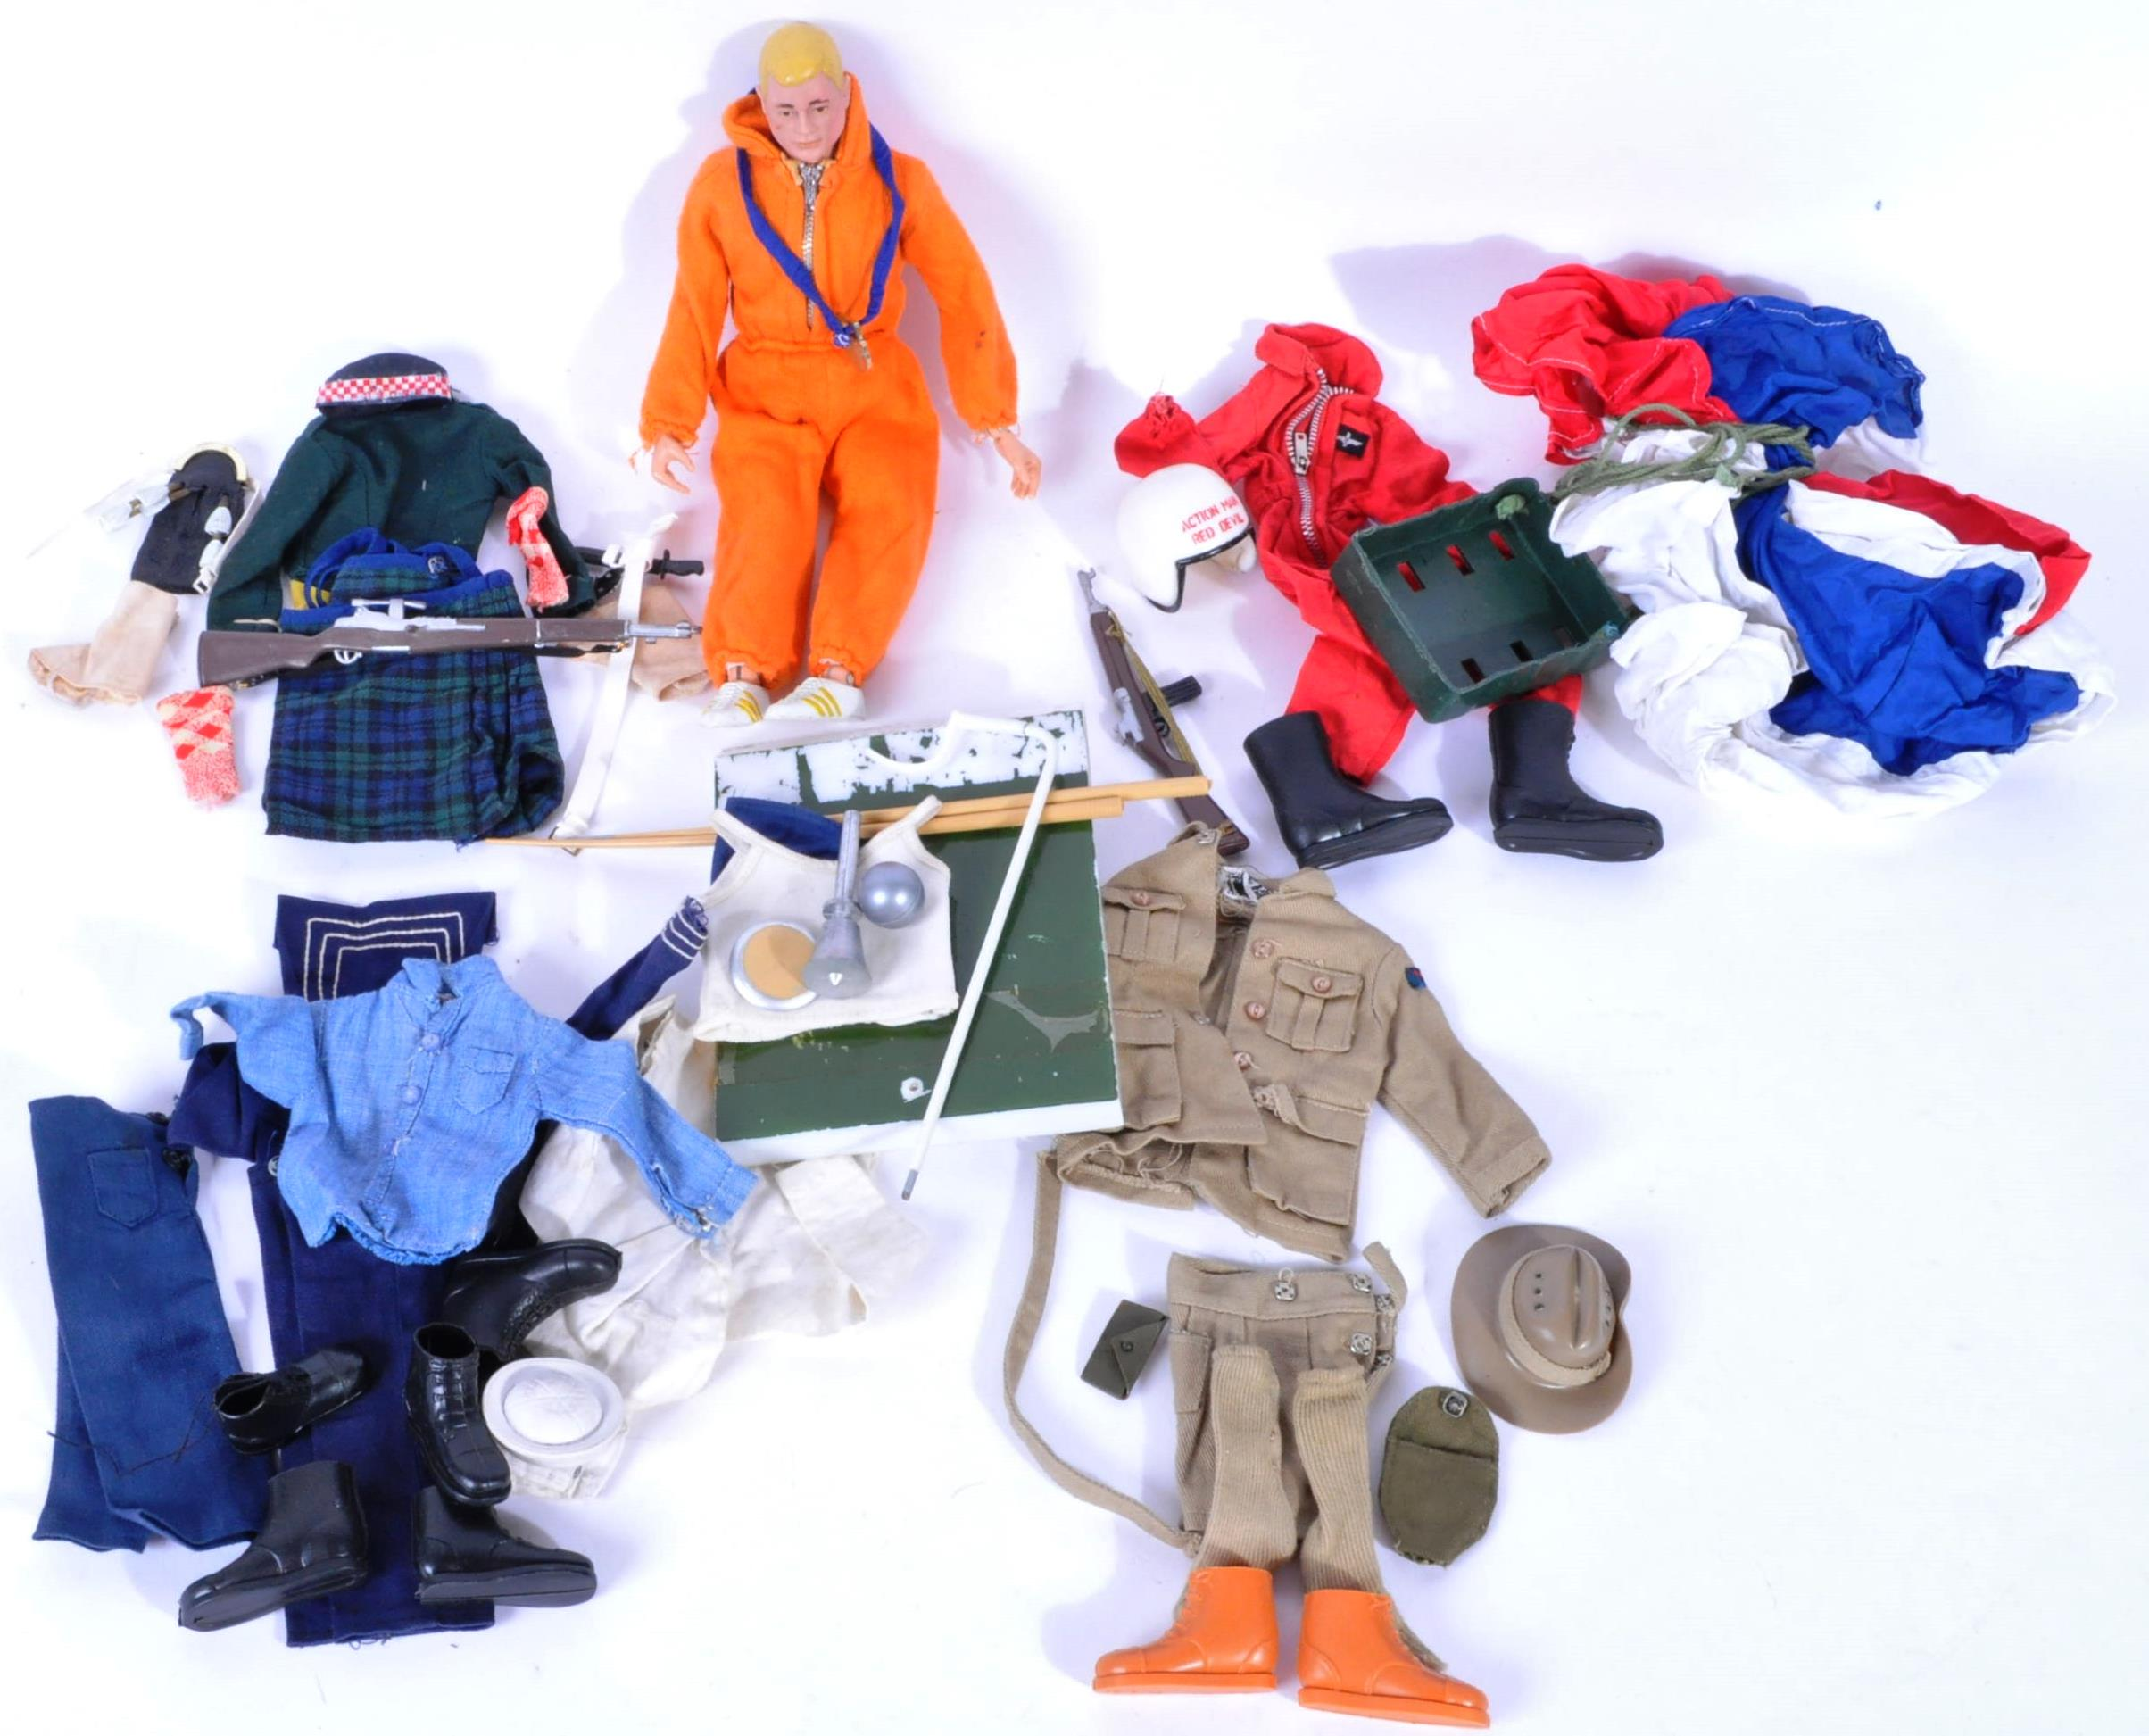 ACTION MAN - COLLECTION OF VINTAGE PALITOY UNIFORMS & FIGURE